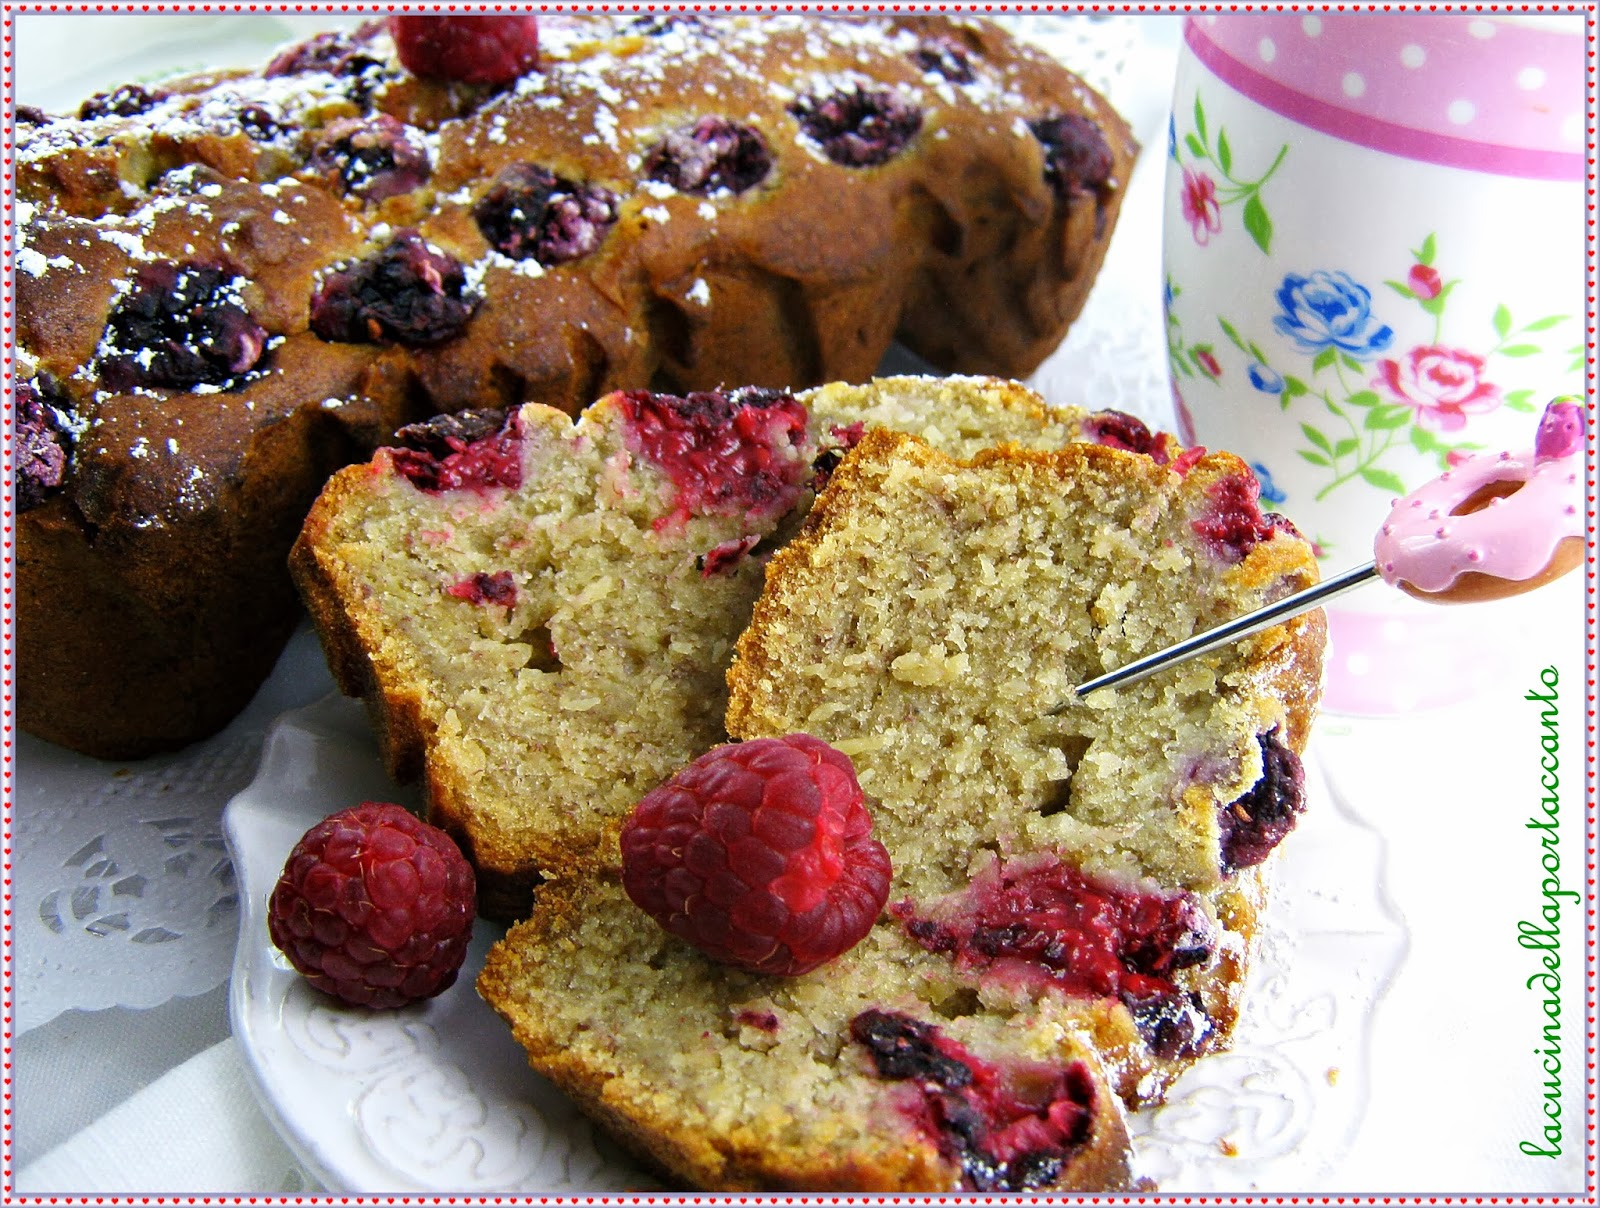 banana bread  al farro, con lamponi freschi / banana bread with spelled, with fresh raspberries